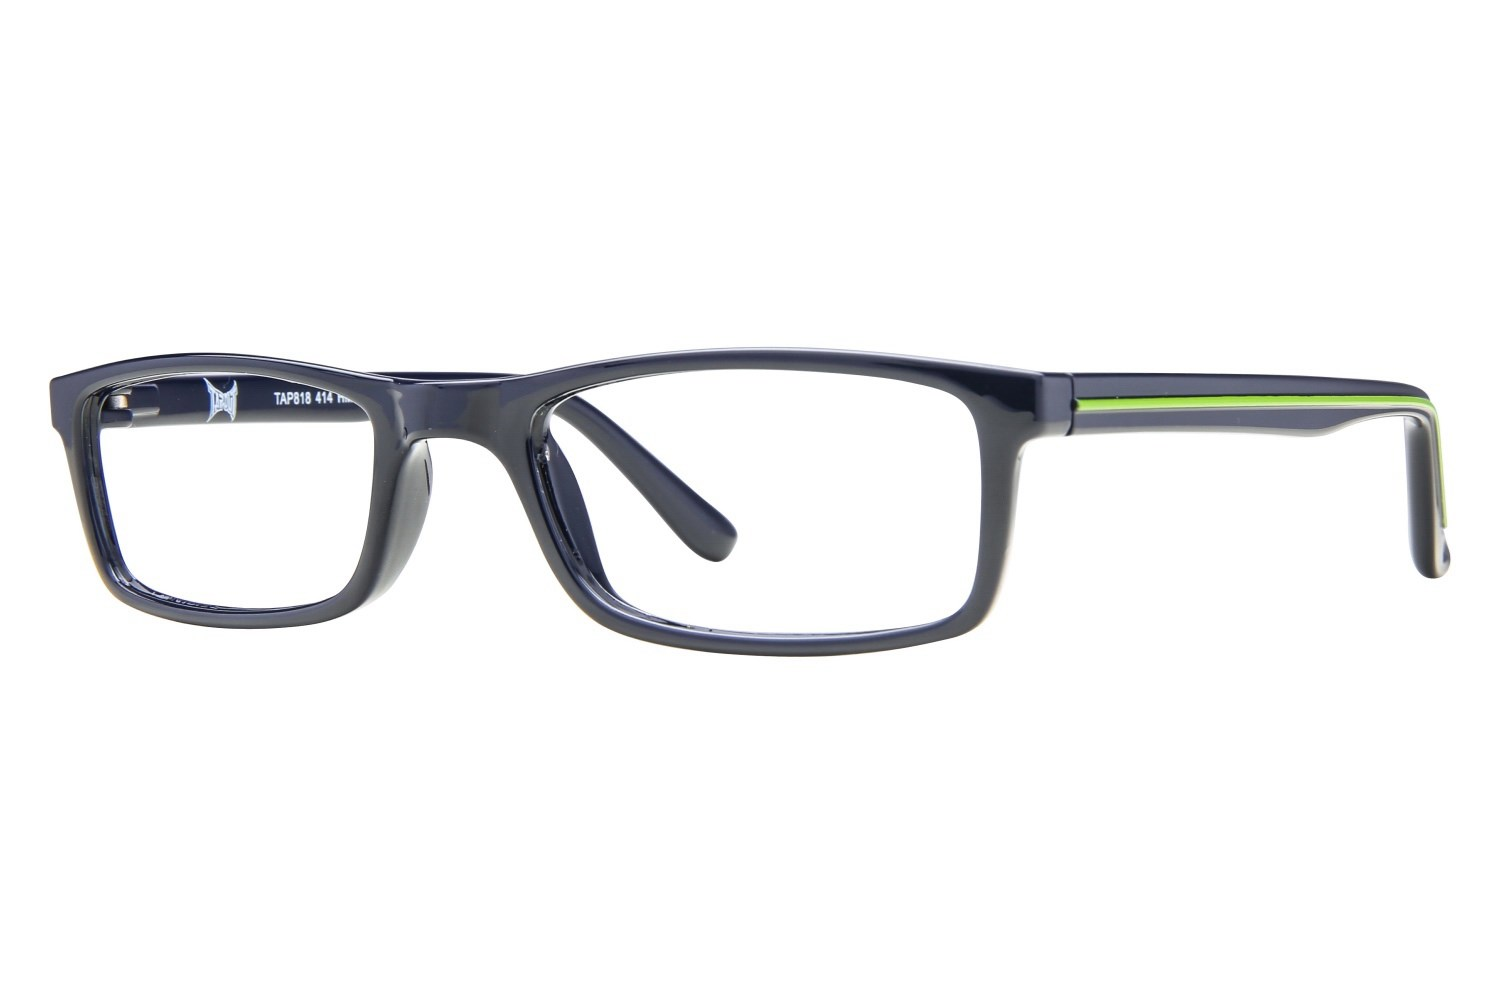 a34e1d0b0b eyeglasses  Brand TapouT Eyewear glasses and contact lenses superstore